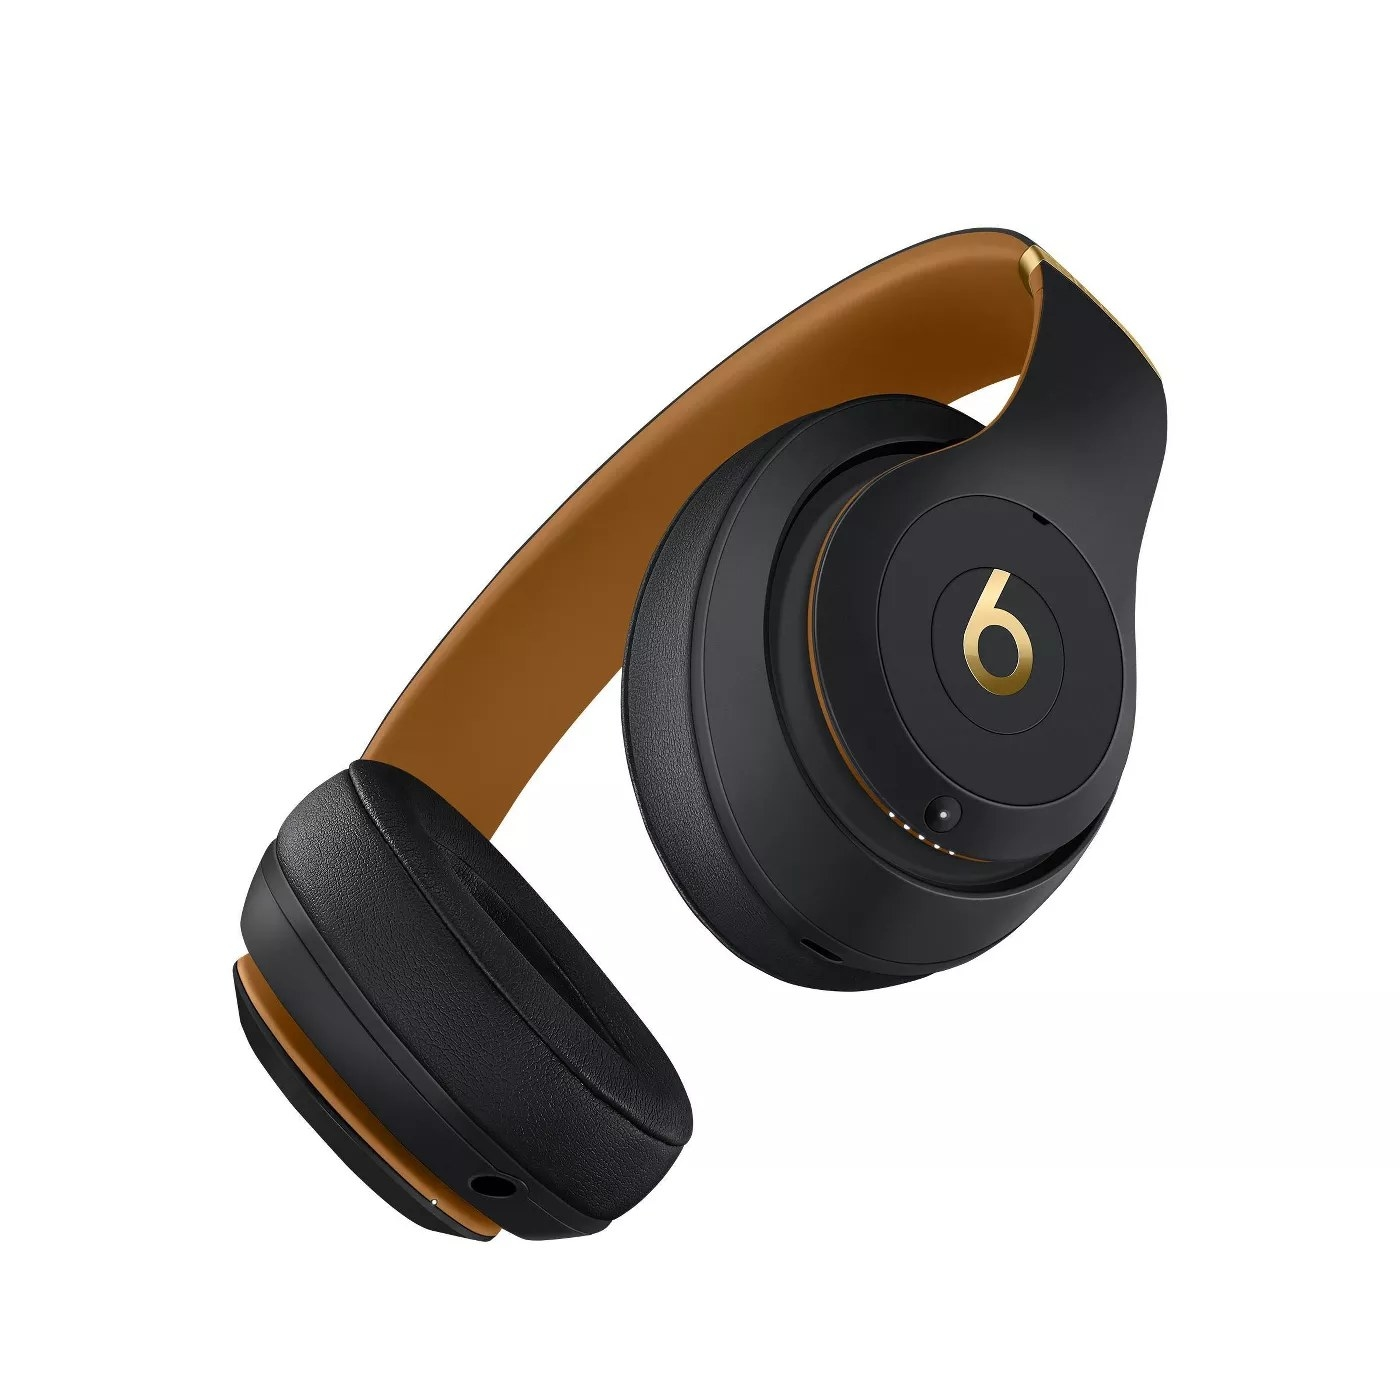 A black and gold pair of over-ear headphones